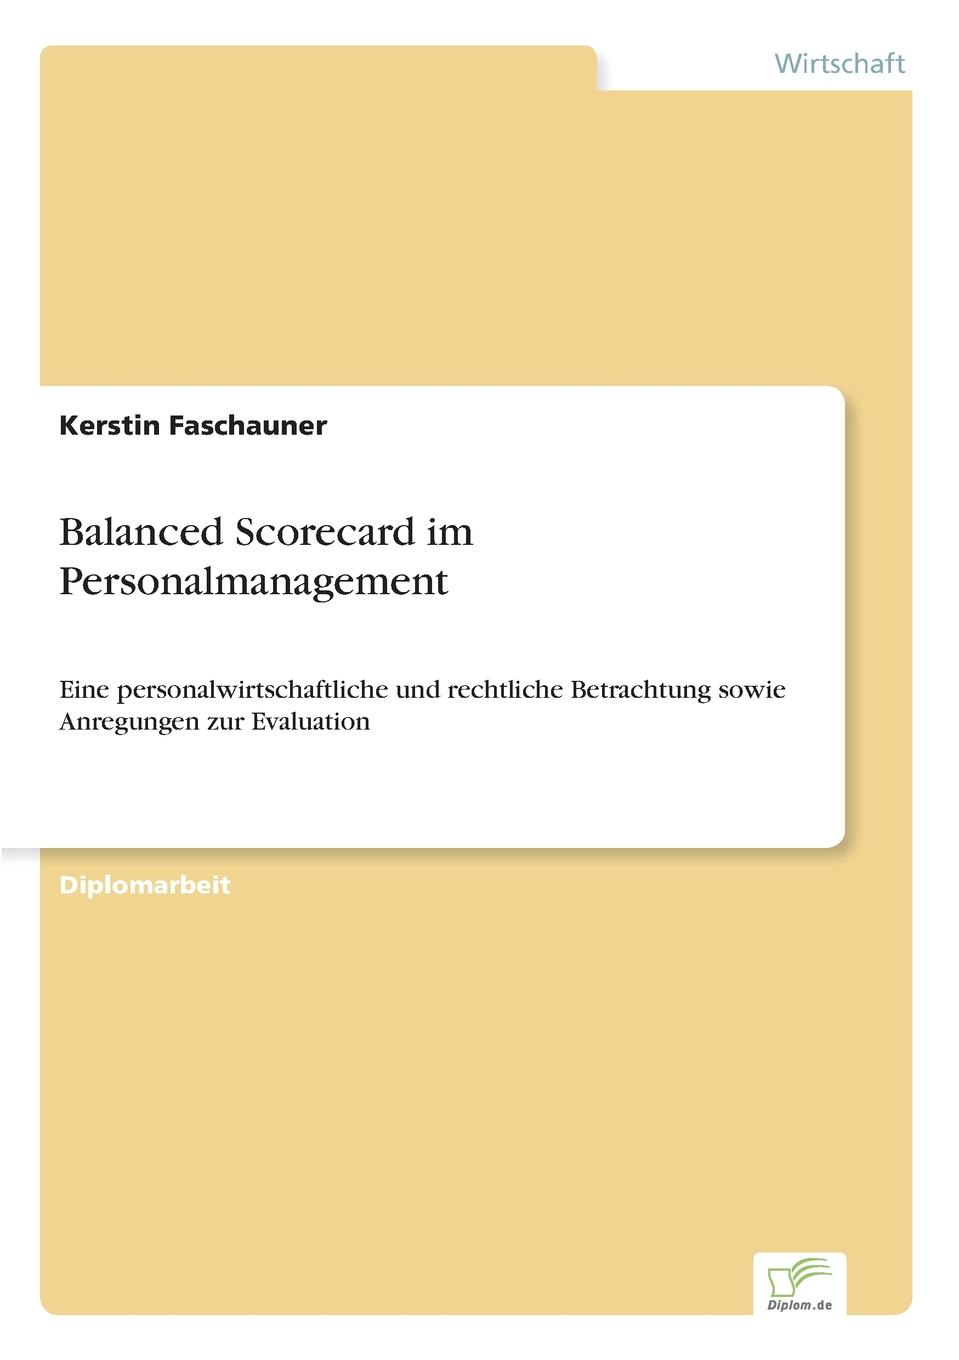 цена на Kerstin Faschauner Balanced Scorecard im Personalmanagement